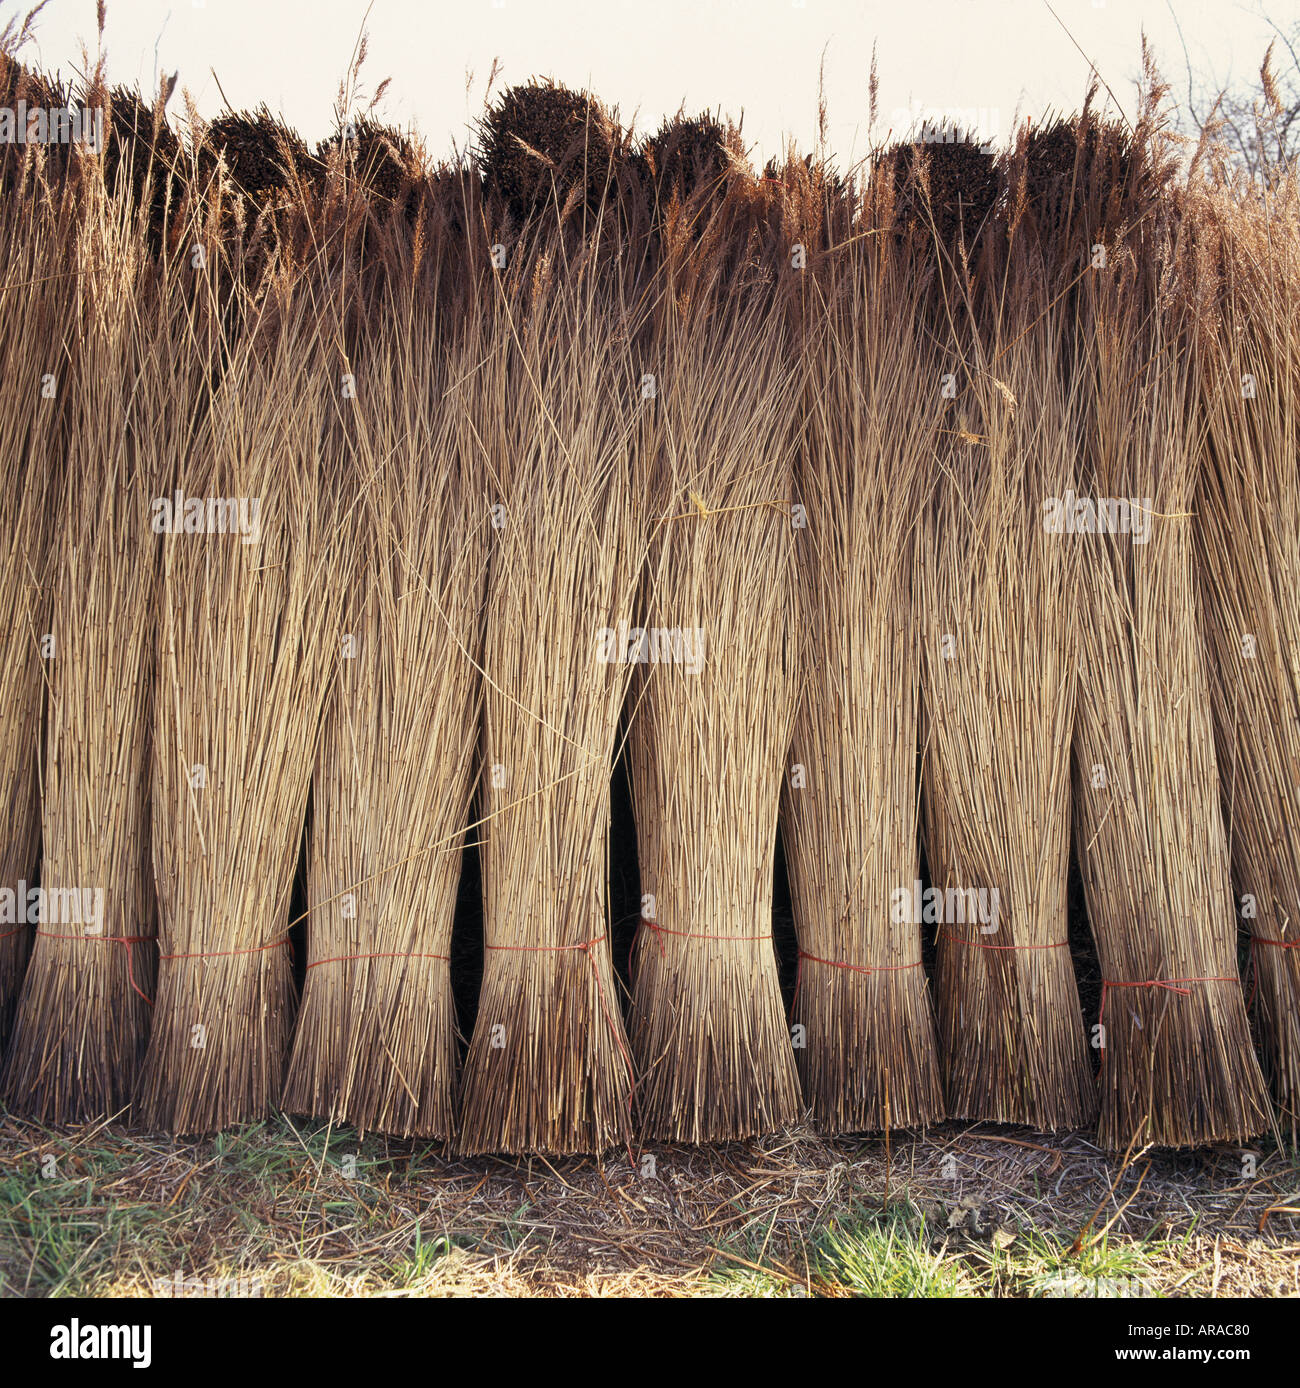 Thatching reed cut and stacked ready for use in Suffolk - Stock Image